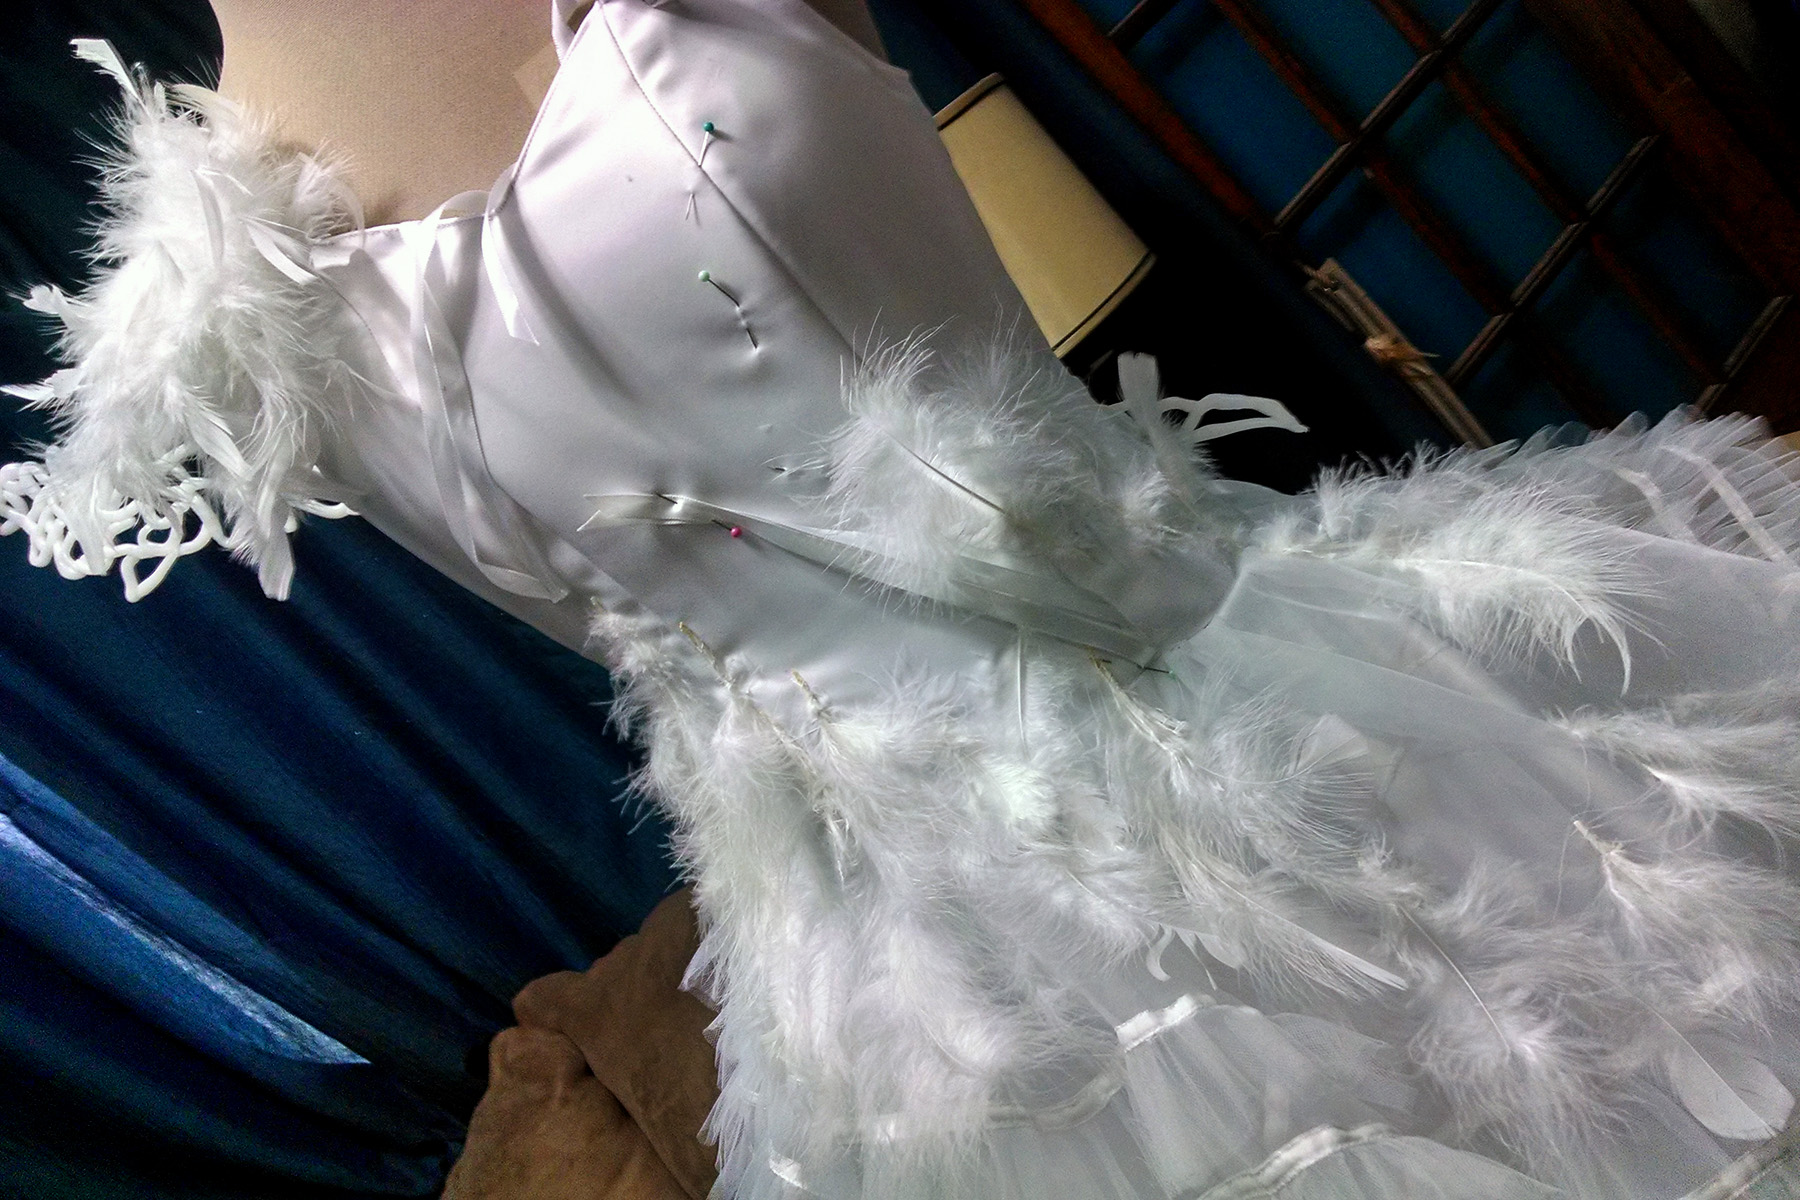 A close up view of the in-progress wedding gown bodice.  There are pieces of white ribbon pinned to a few places on the bodice.